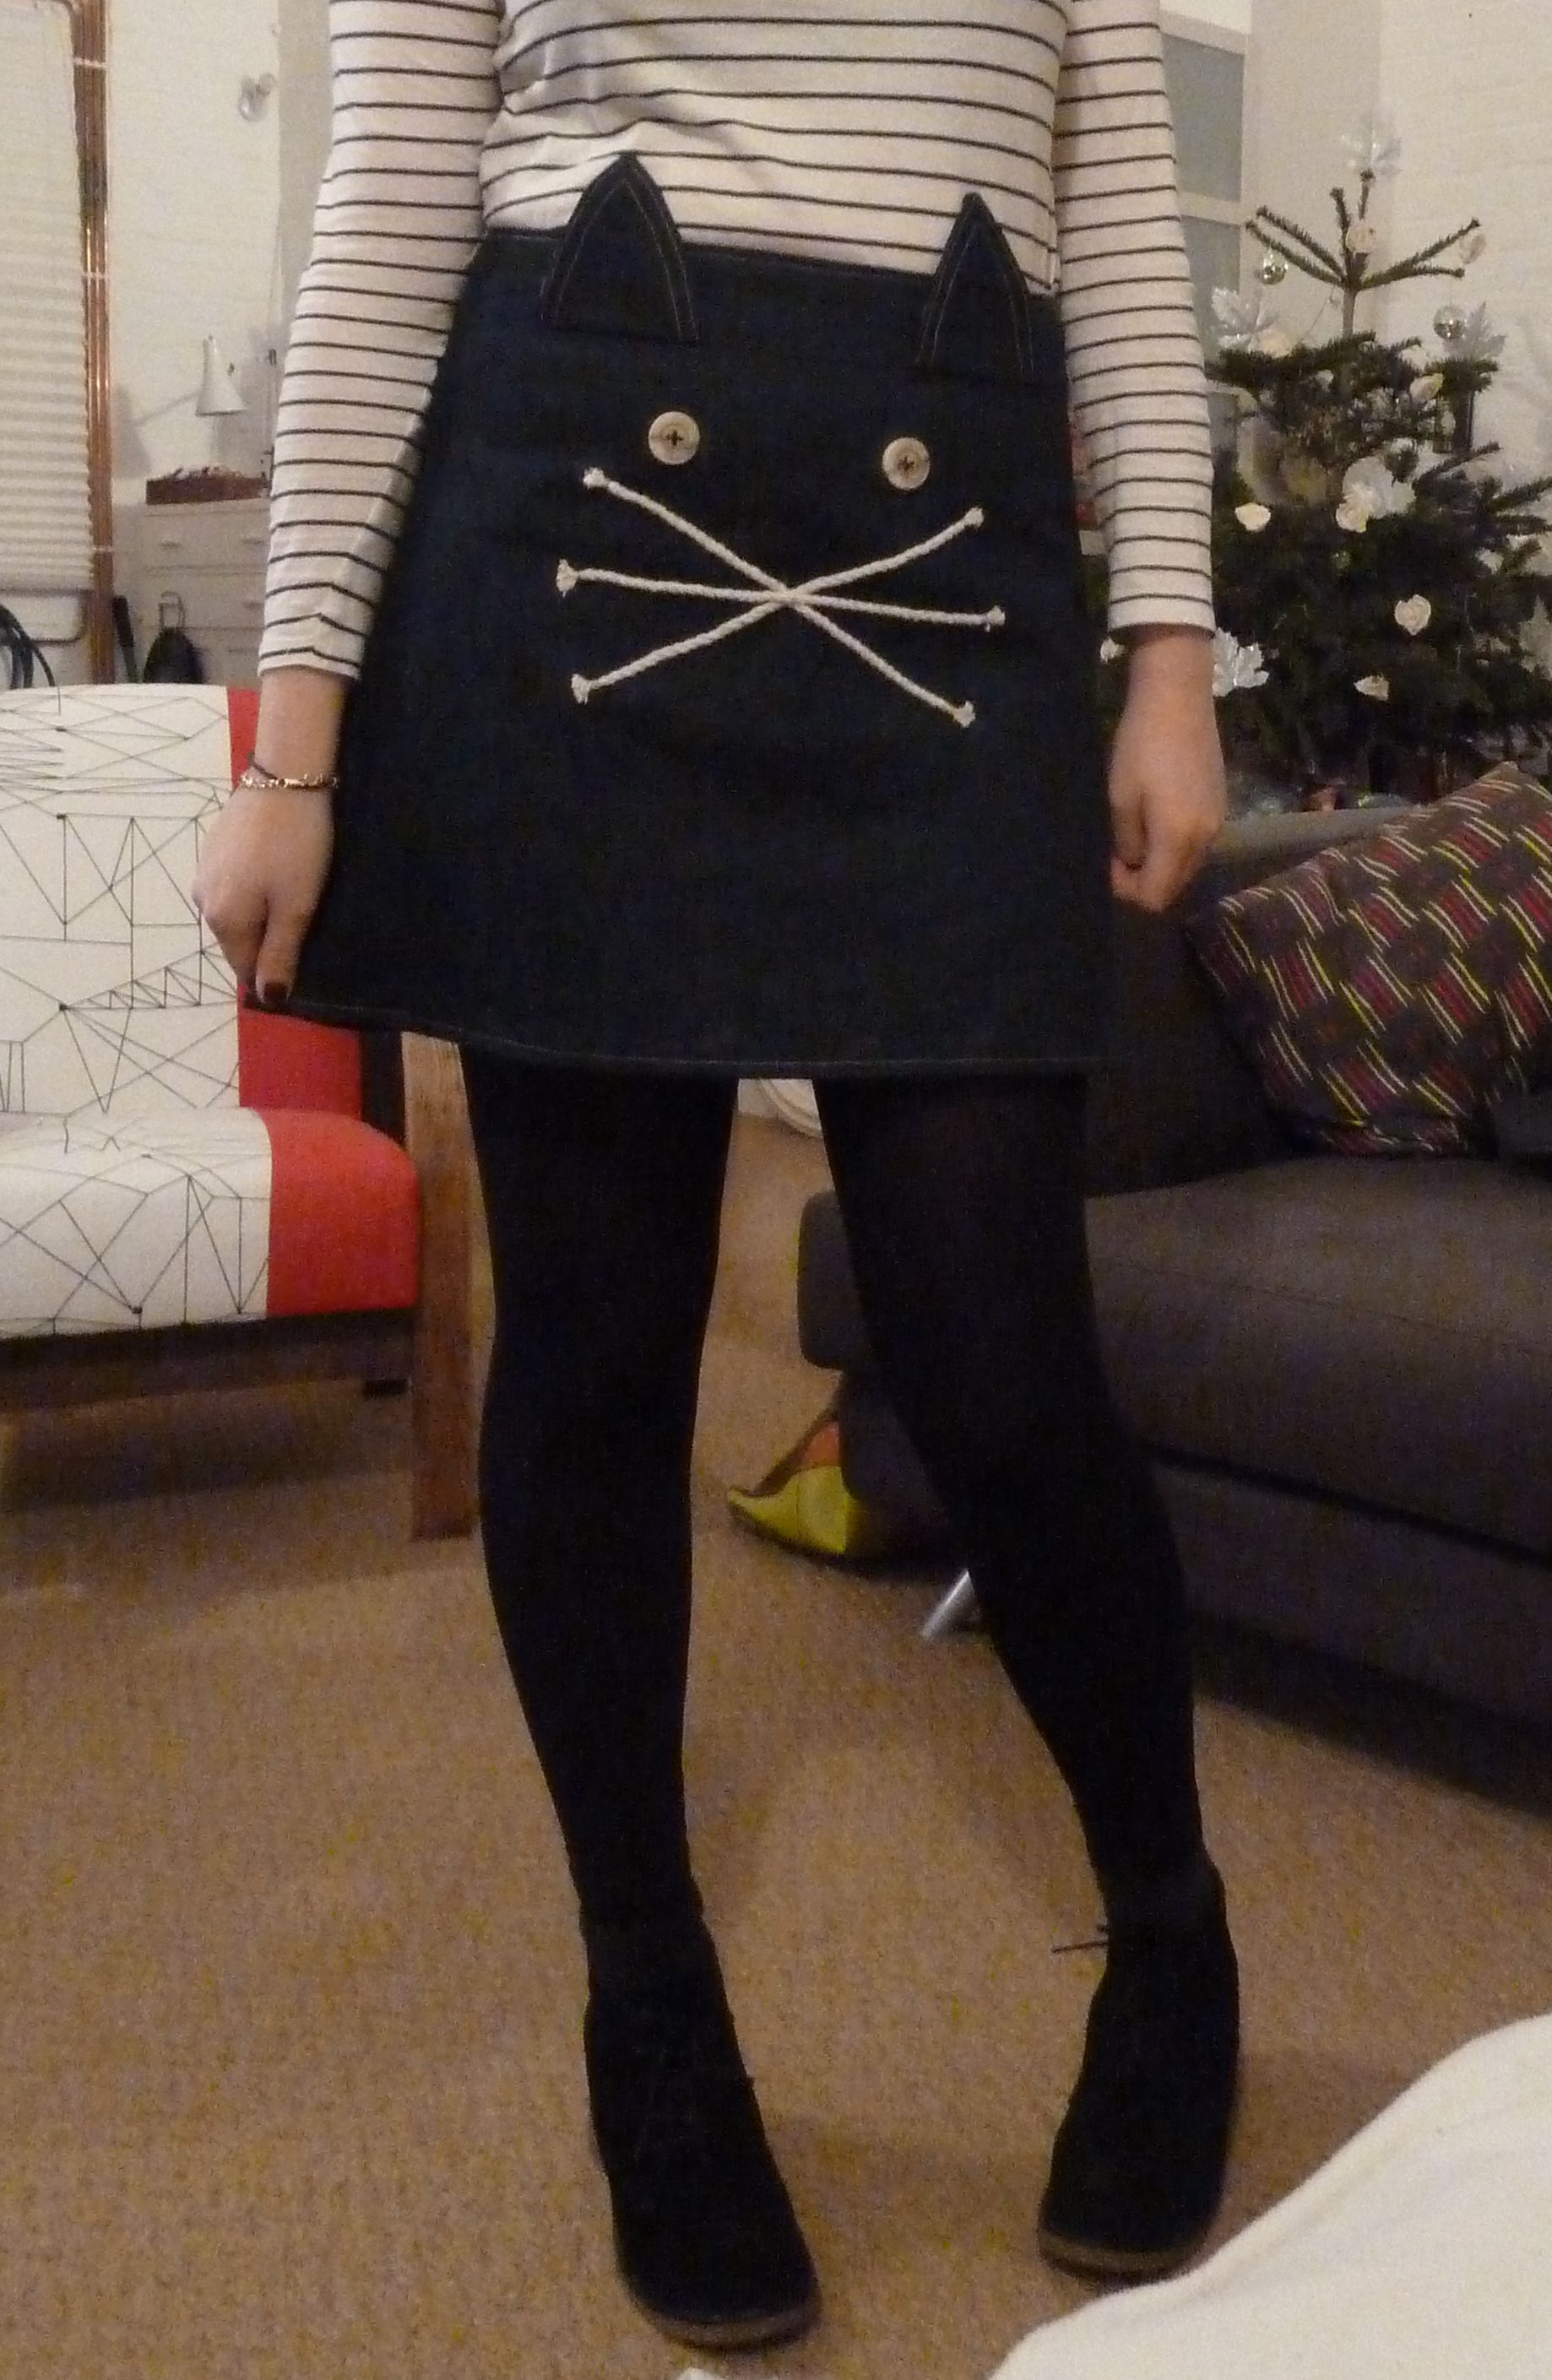 My boyfriend's mum made me this skirt for Christmas. Chuffed.